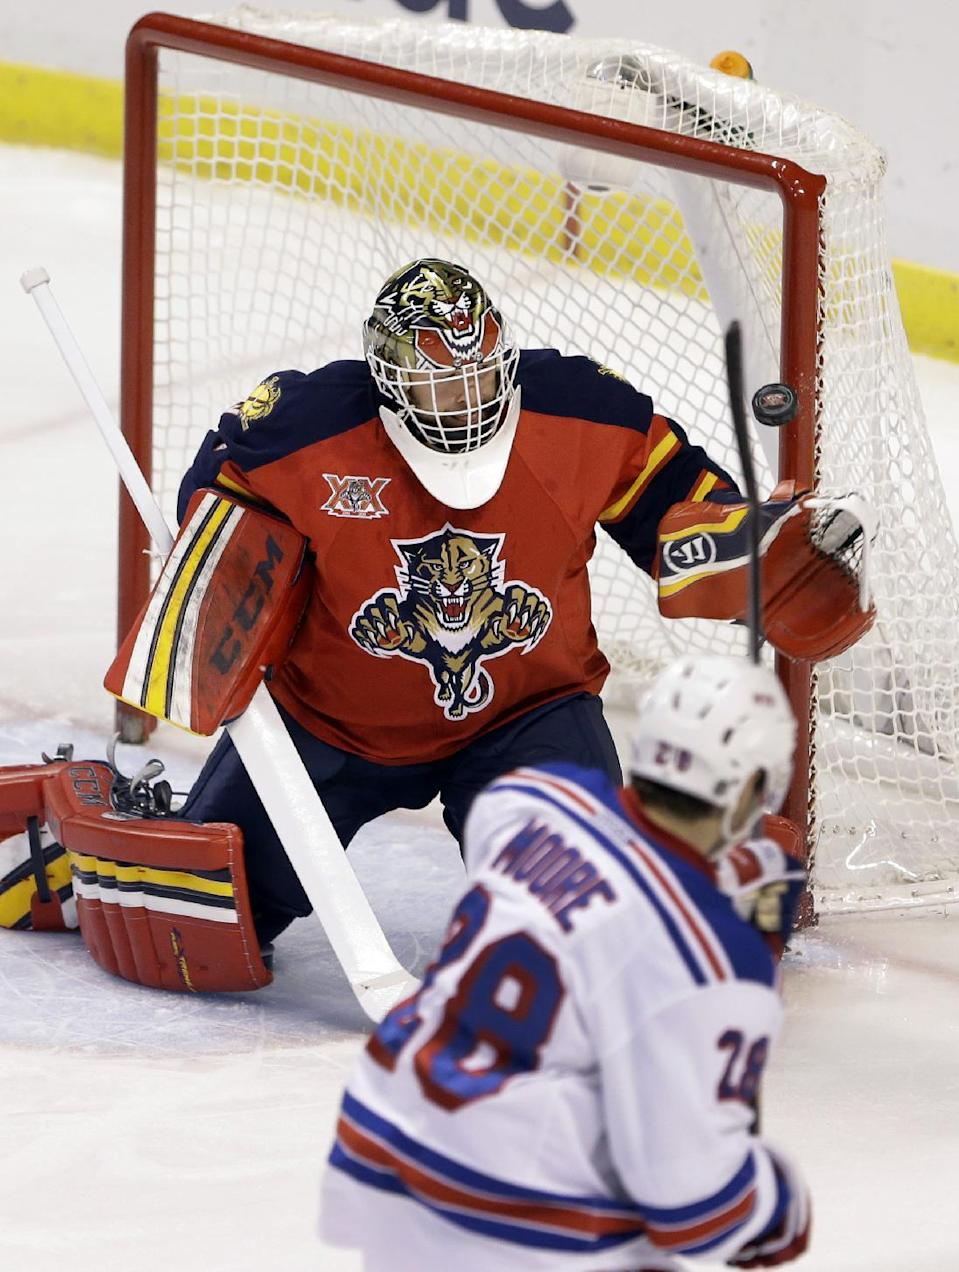 A shot by New York Rangers center Dominic Moore (28) against Florida Panthers goalie Tim Thomas, hits the cross bar during the first period of an NHL hockey game Tuesday, Dec. 31, 2013, in Sunrise, Fla. (AP Photo/Wilfredo Lee)